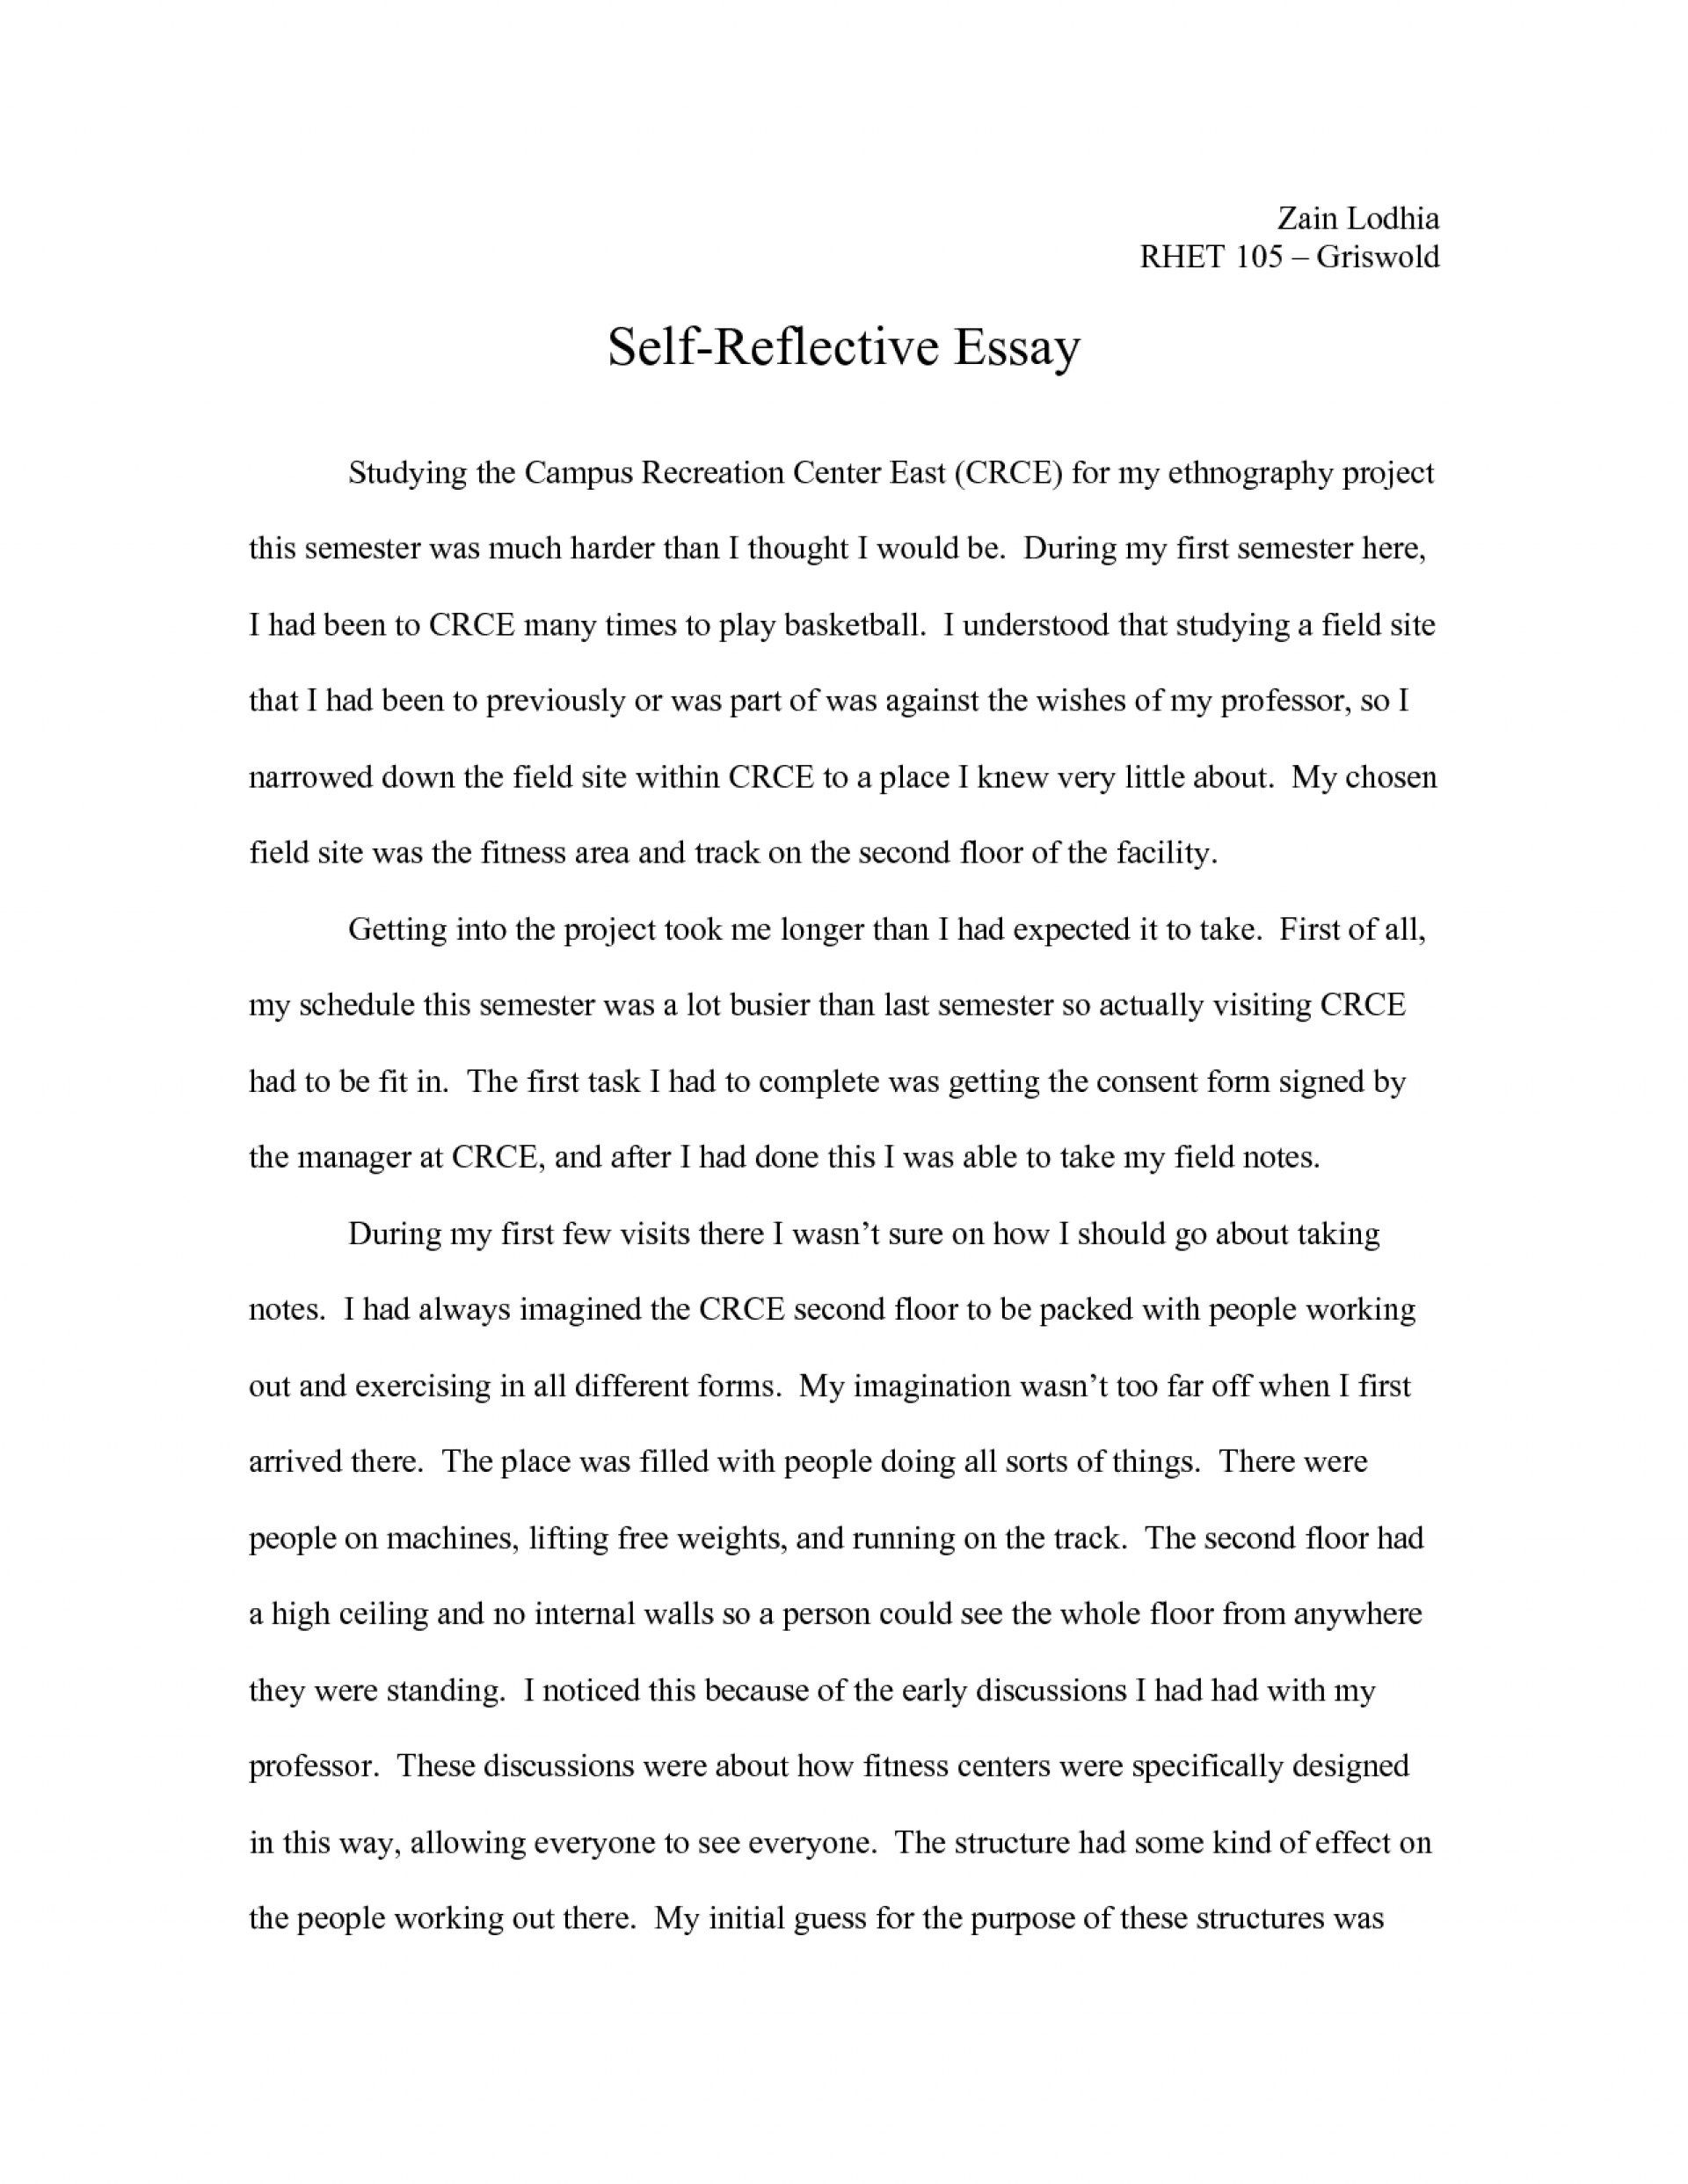 028 How To Write And Essay Qal0pwnf46 Unique An Paper In Apa Format Conclusion Mla 1920